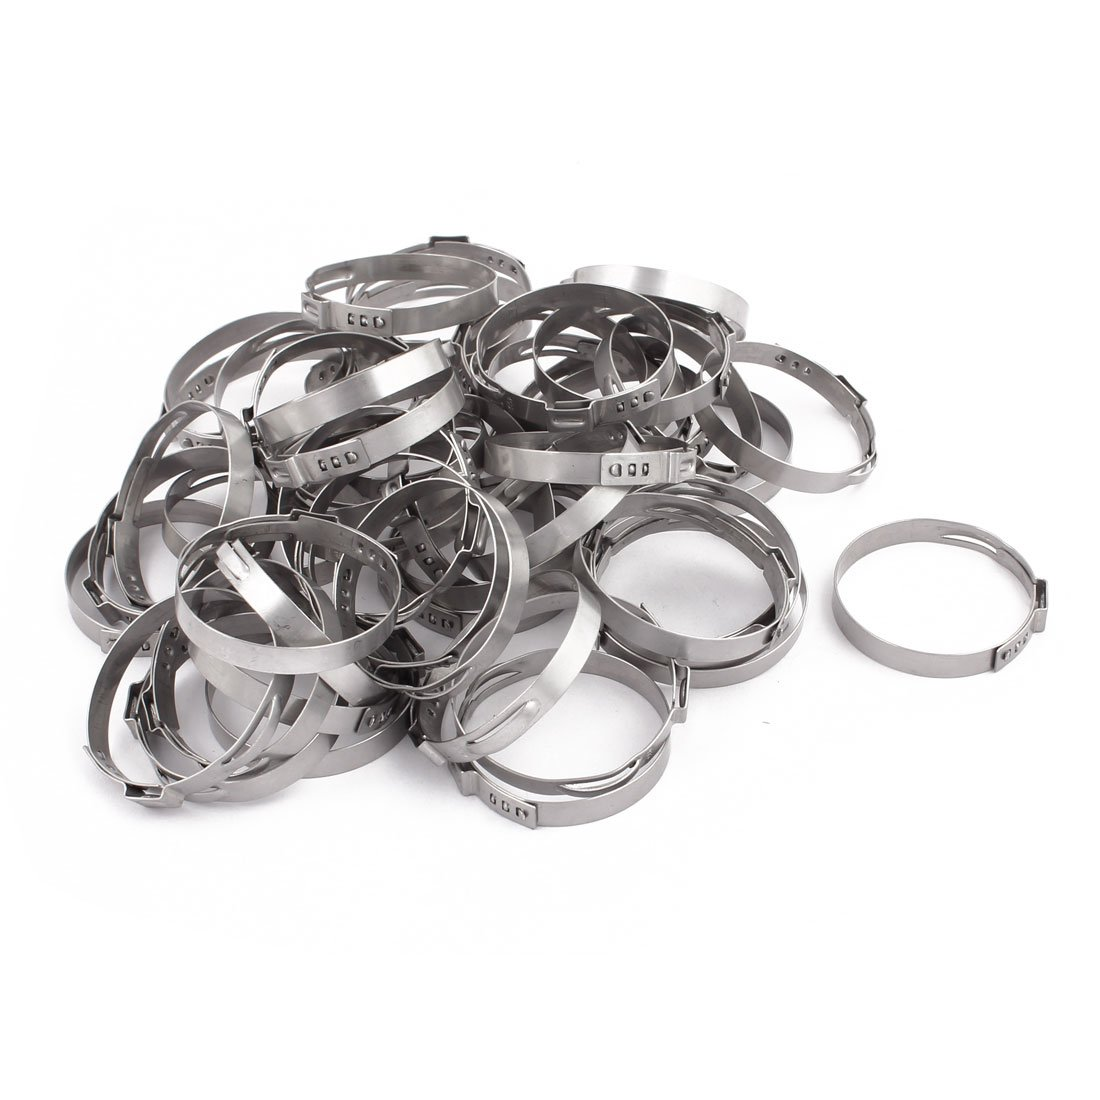 uxcell 42.3mm-45.5mm 304 Stainless Steel Adjustable Tube Hose Clamps Silver Tone 50pcs